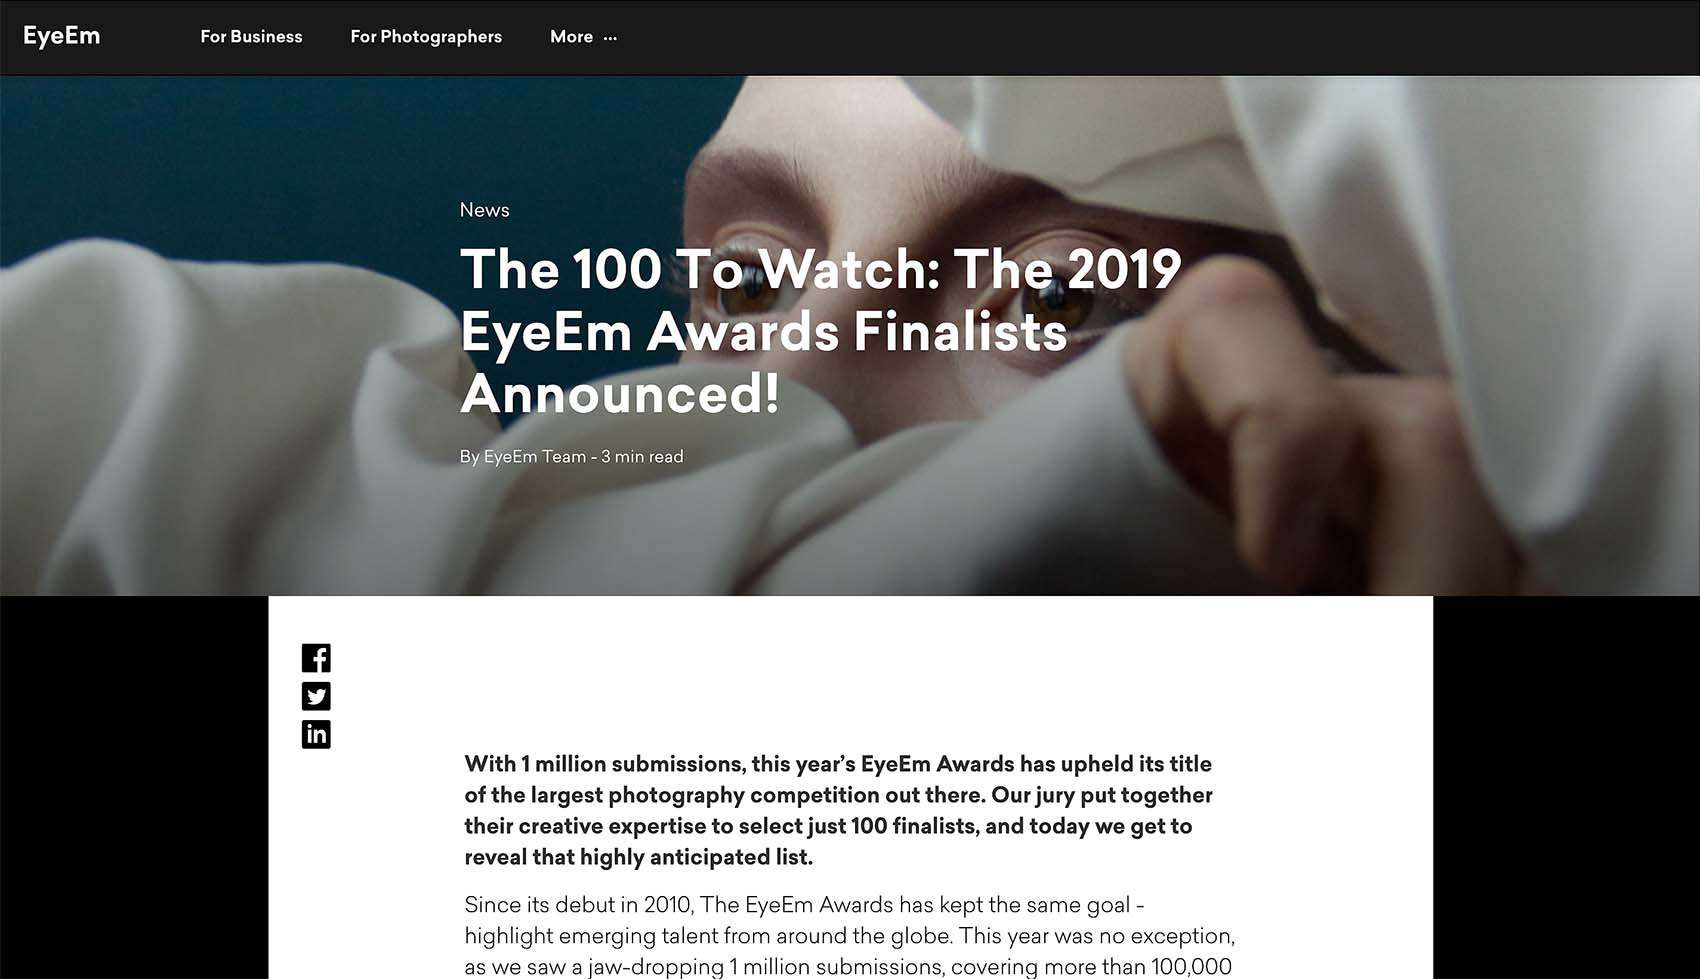 The 100 to watch: The 2019 EyeEm Awards Finalists Announced!